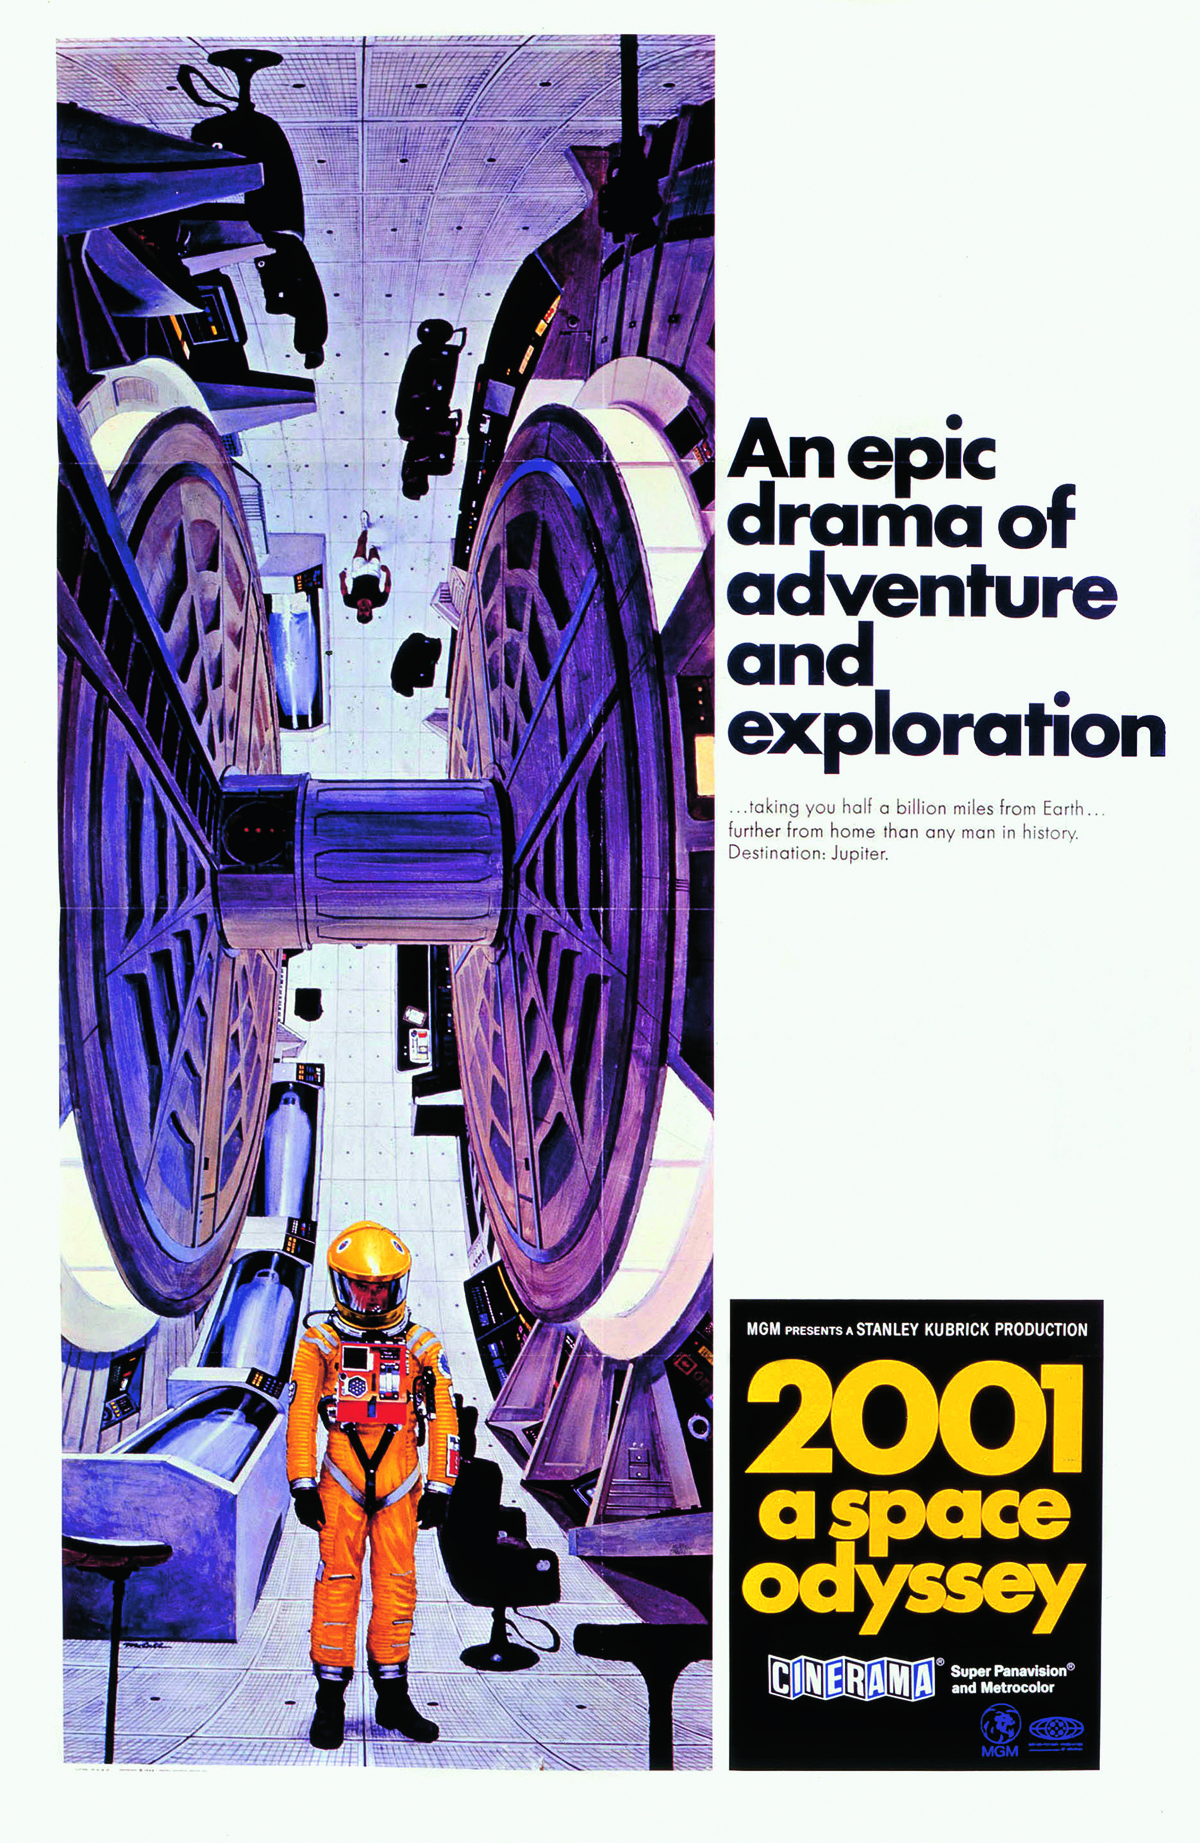 2001 A Space Odyssey poster. All images, unless otherwise captioned: courtesy of Harry Lange Archive/The Boynett Collection